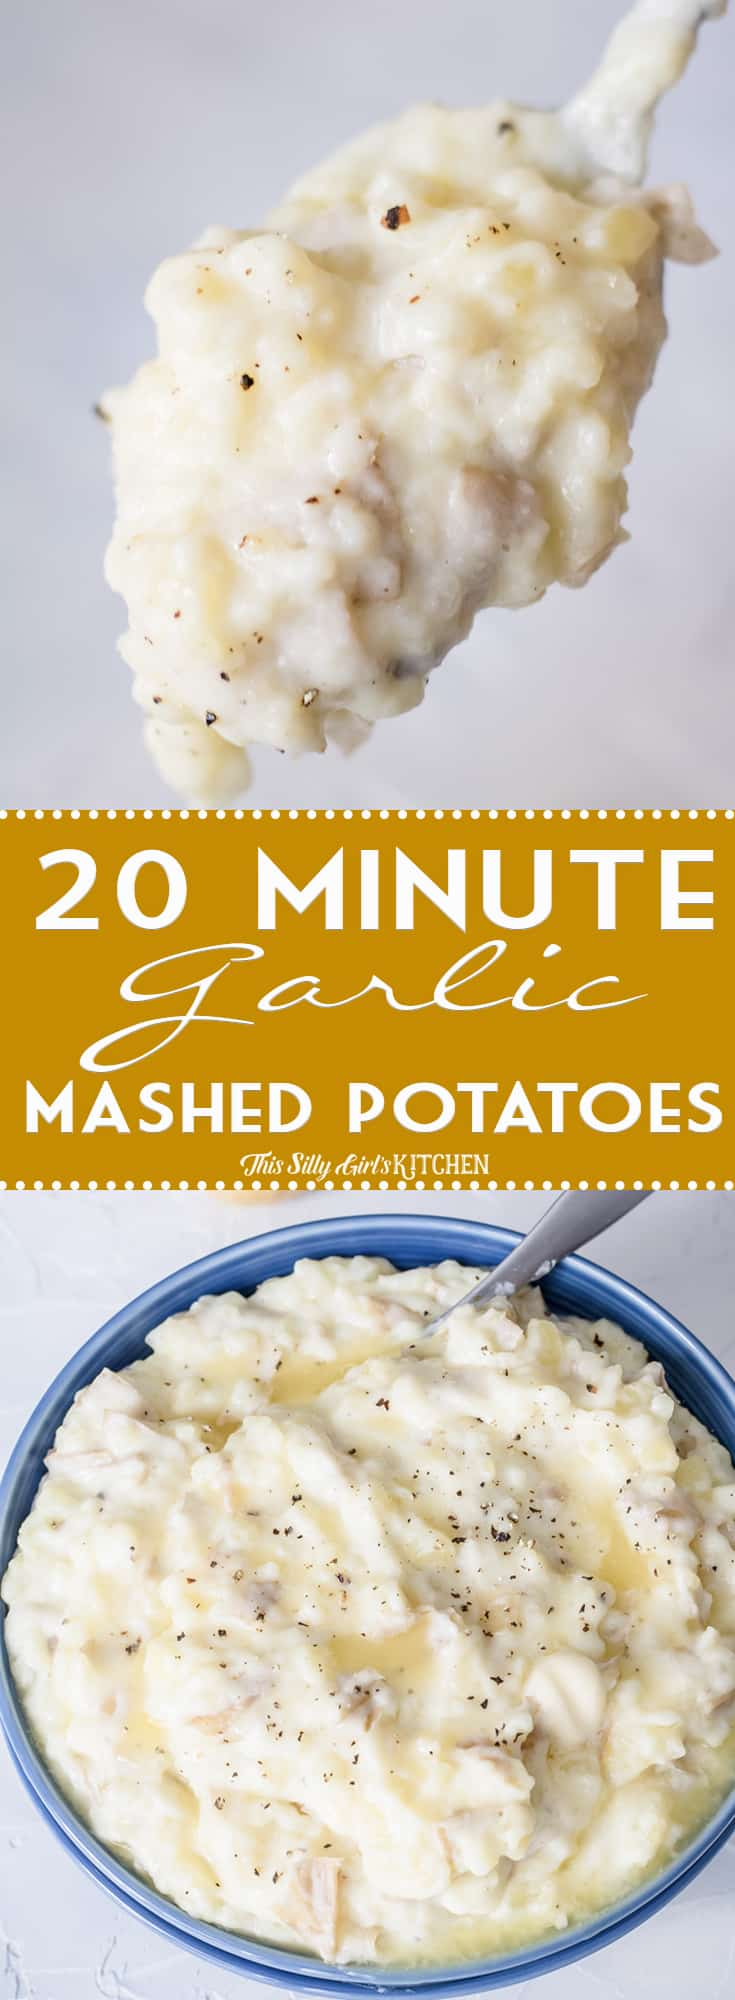 Garlic Mashed Potatoes, creamy garlic mashed potatoes ready in just 20 minutes! #Recipe from ThisSillyGirlsKitchen.com #mashedpotatoes #thanksgiving #christmas #garlicmashedpotatoes